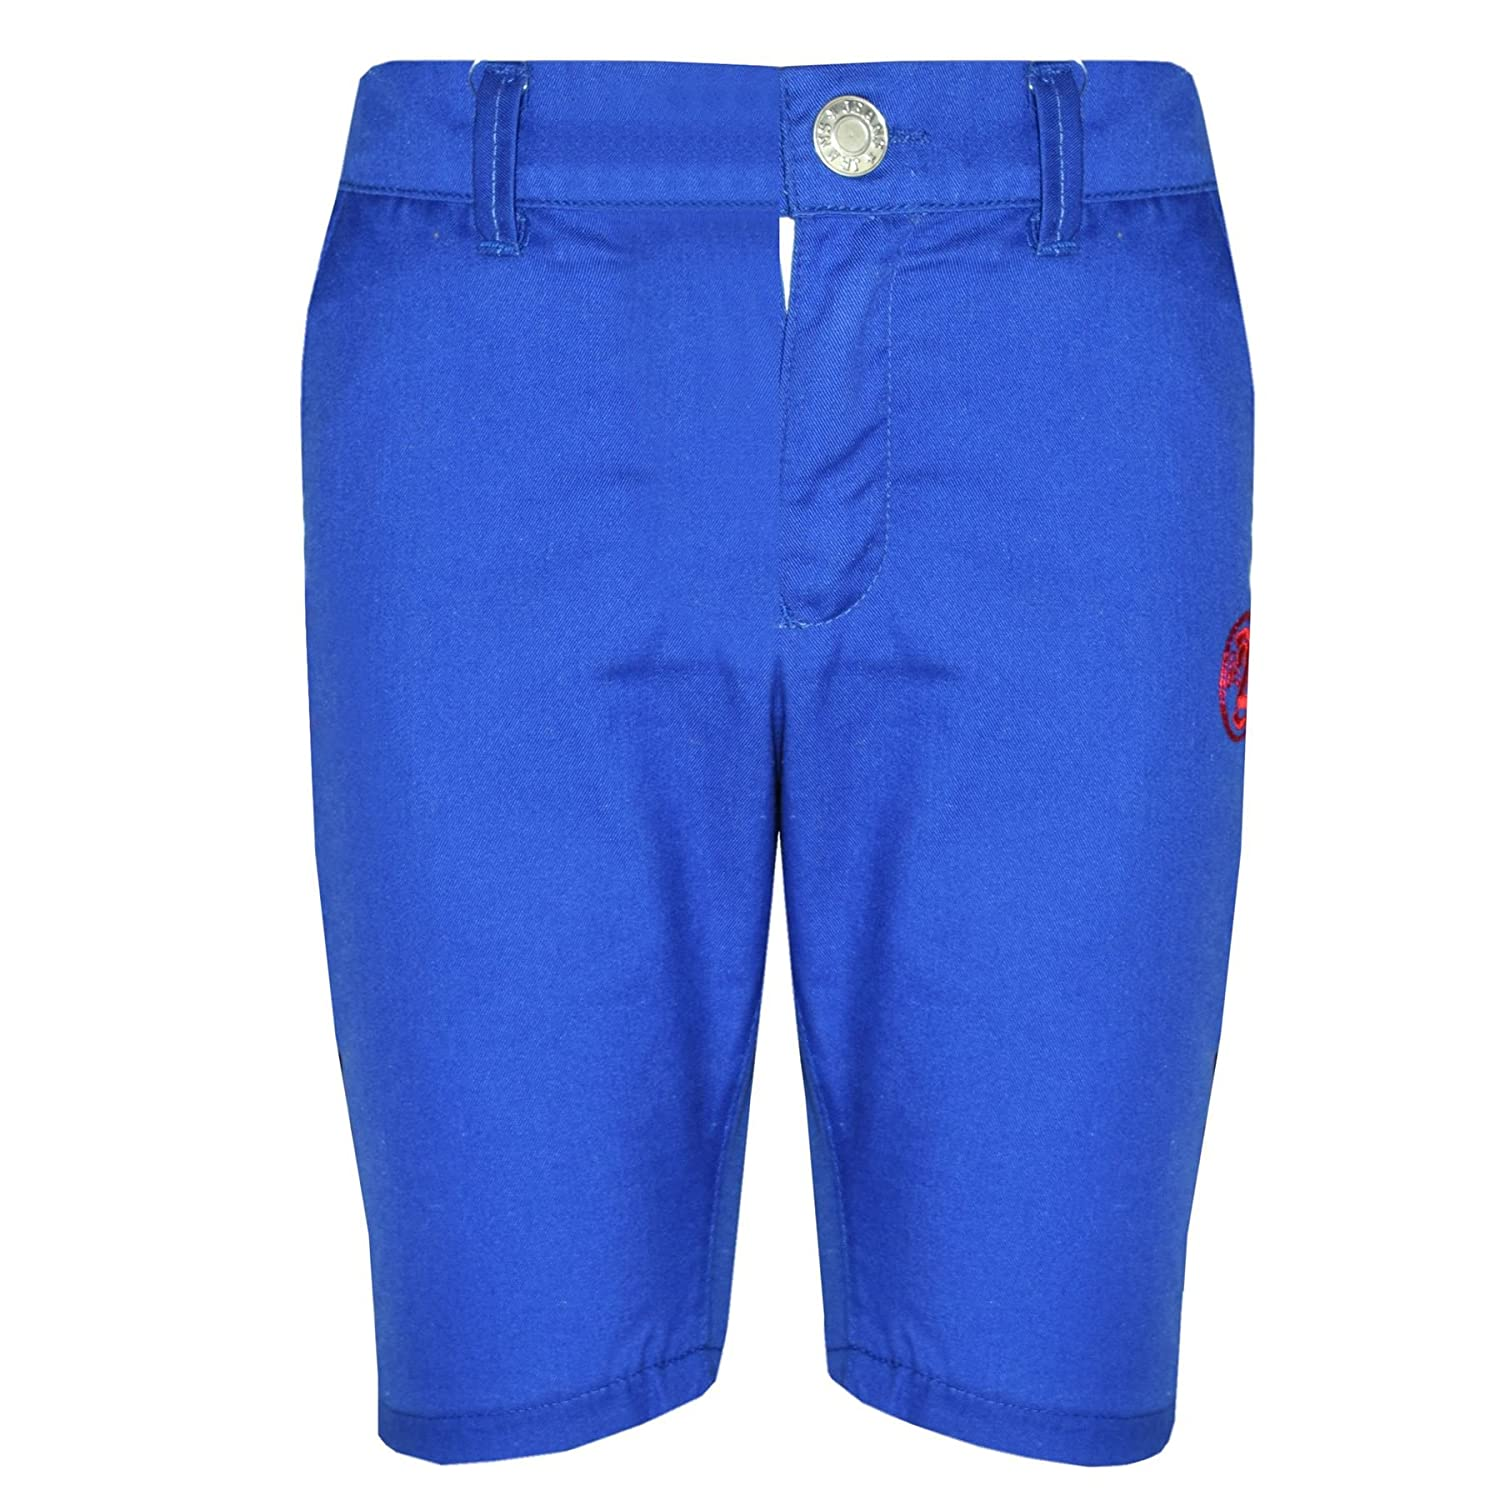 A2Z 4 Kids® Boys Summer Shorts Kids Cotton Royal Blue Chino Shorts Knee Length Half Pant New Age 2 3 4 5 6 7 8 9 10 11 12 13 Years